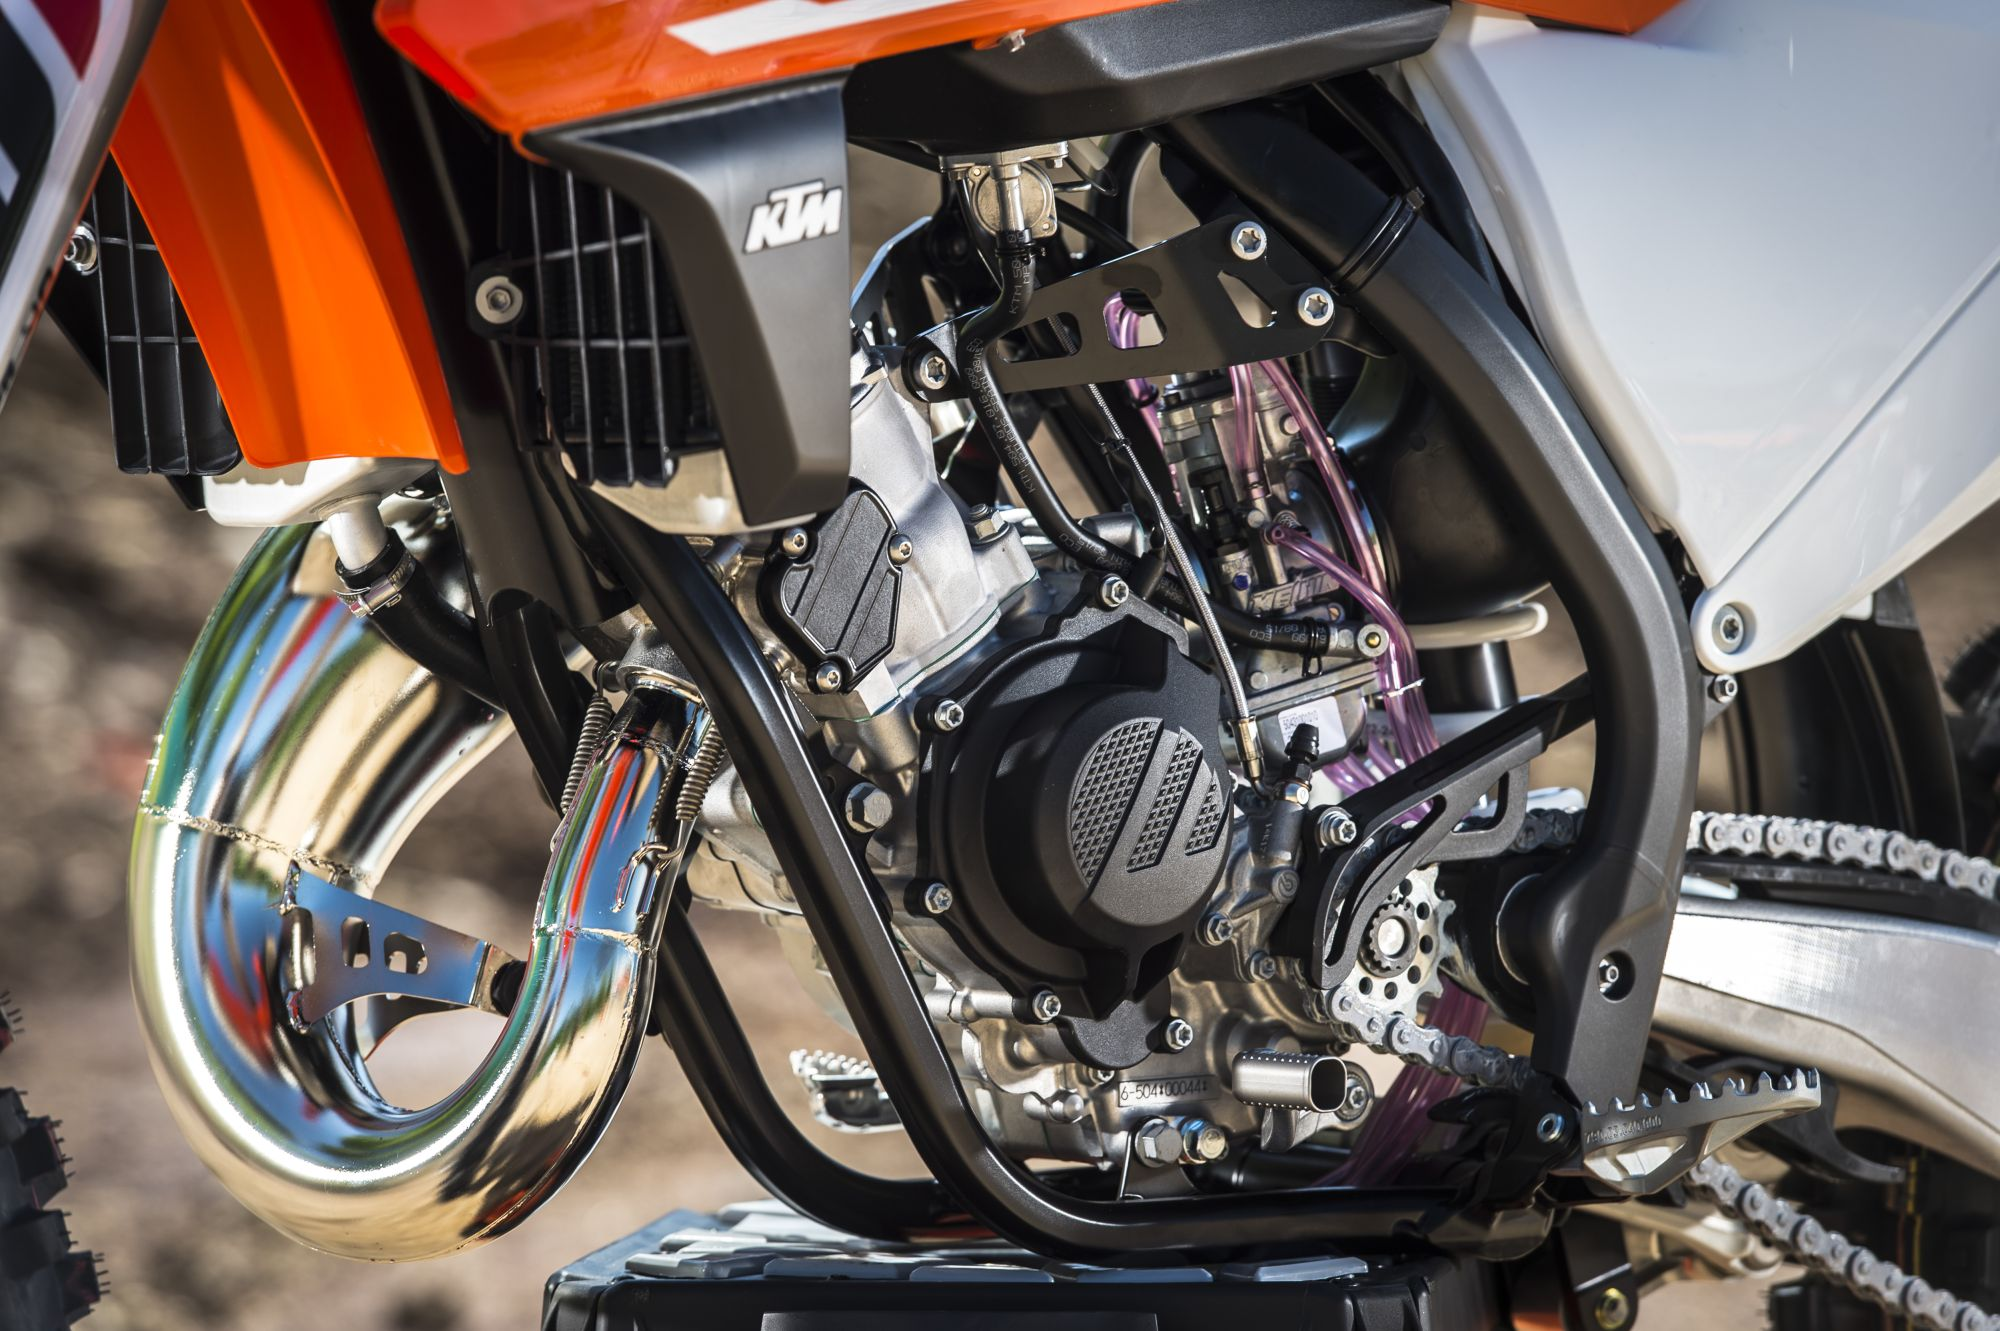 ktm 125 sx all technical data of the model 125 sx from ktm. Black Bedroom Furniture Sets. Home Design Ideas